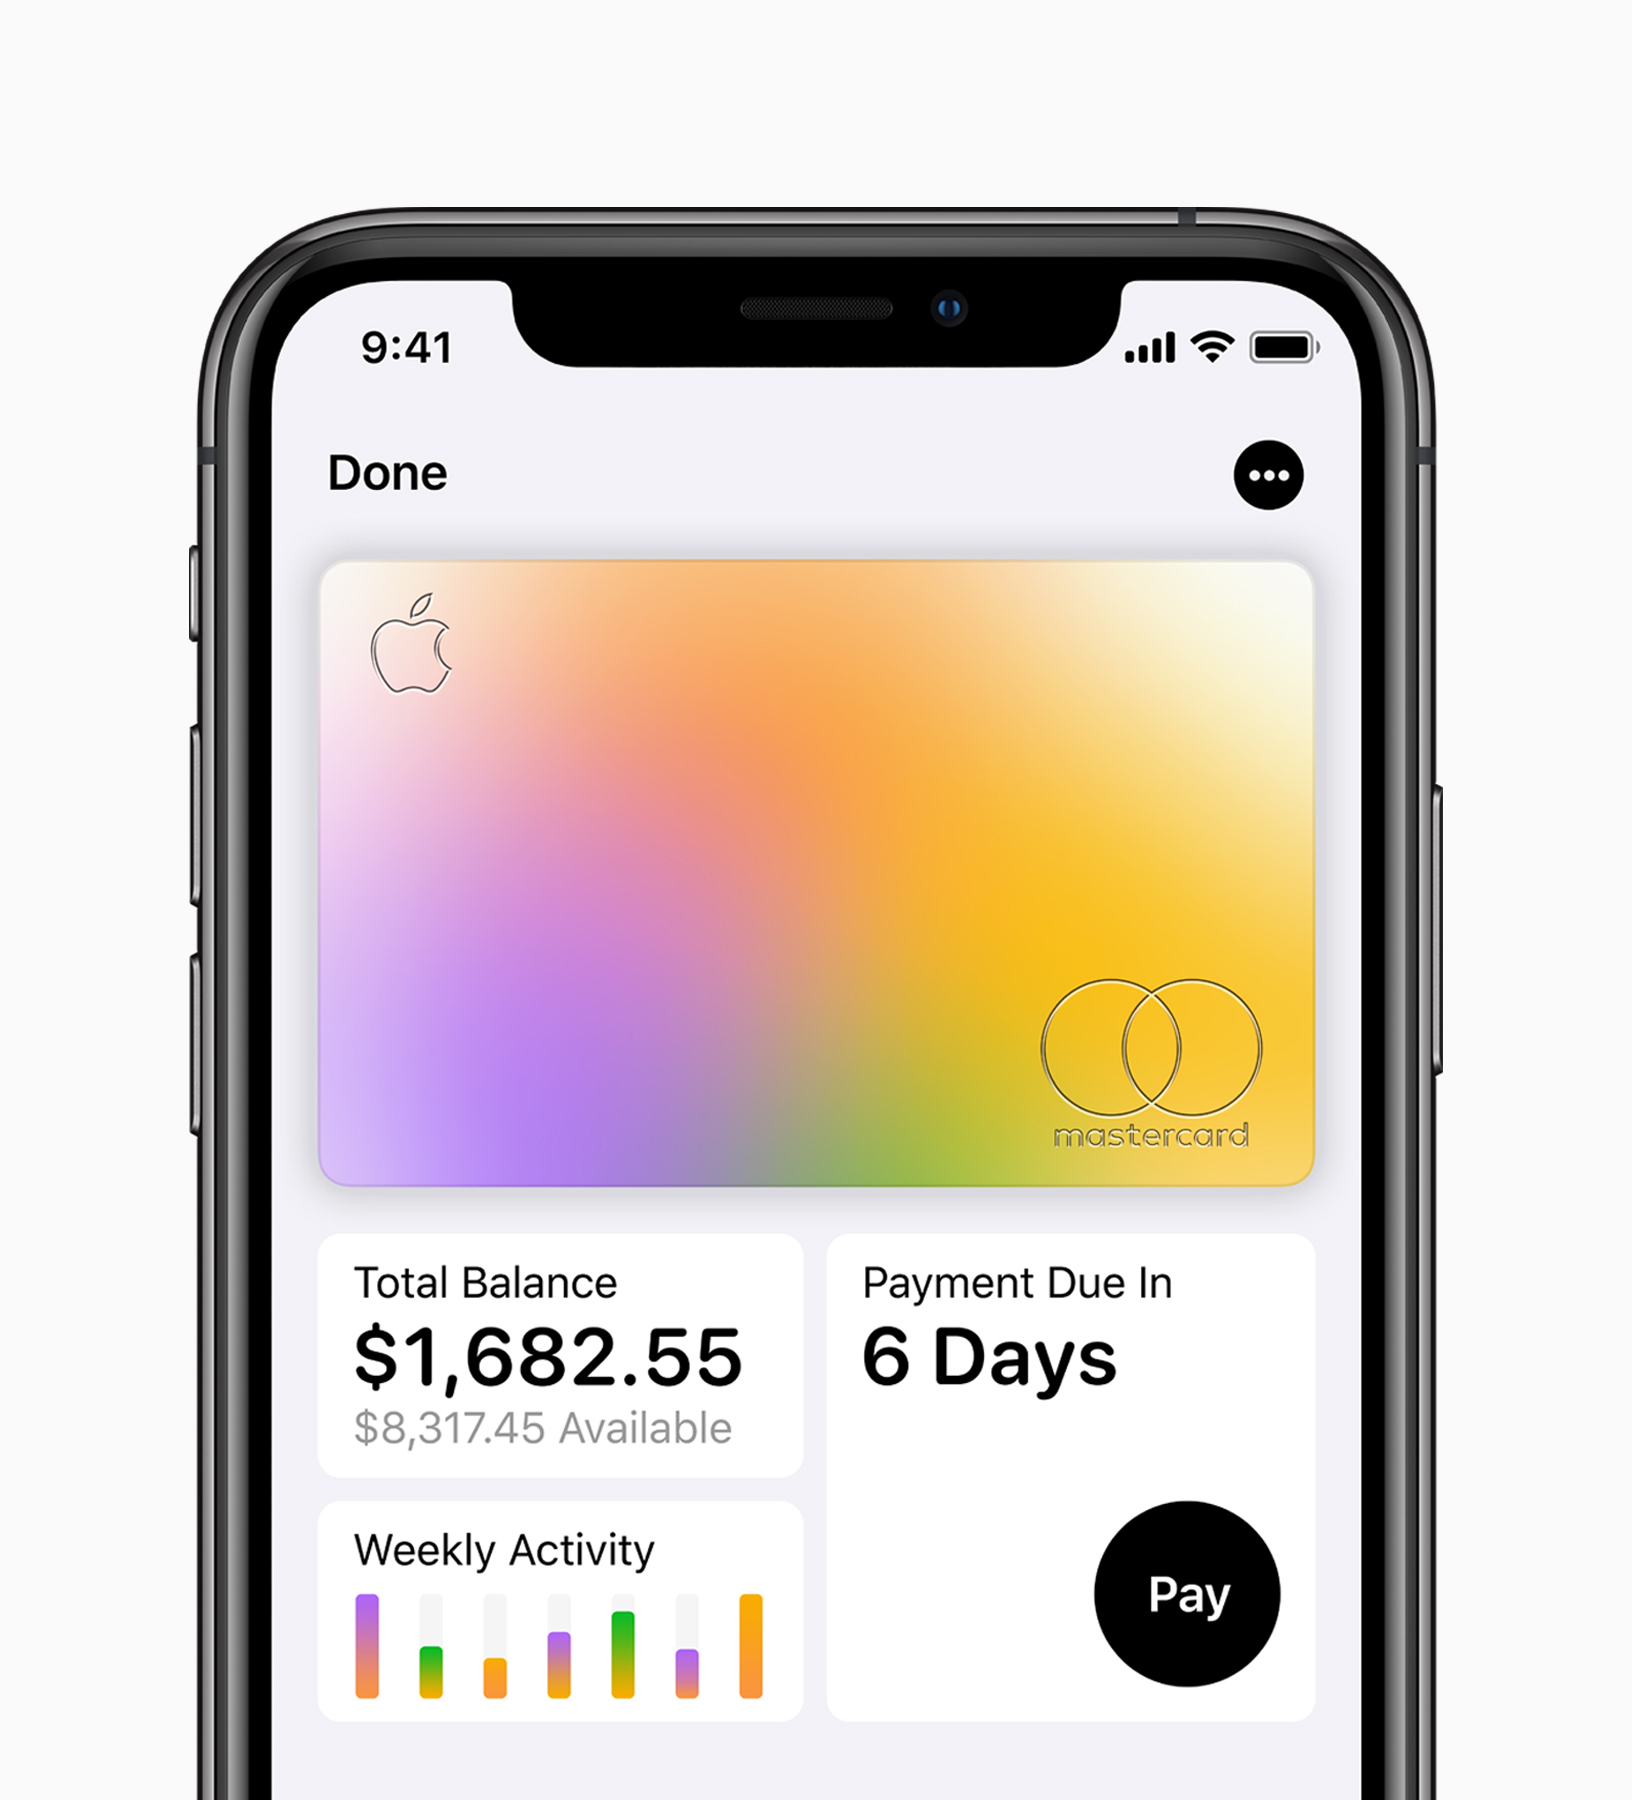 Apple Card iPhoneXS Total Balance 0325191 - Apple could release the Apple Card during the first half of August